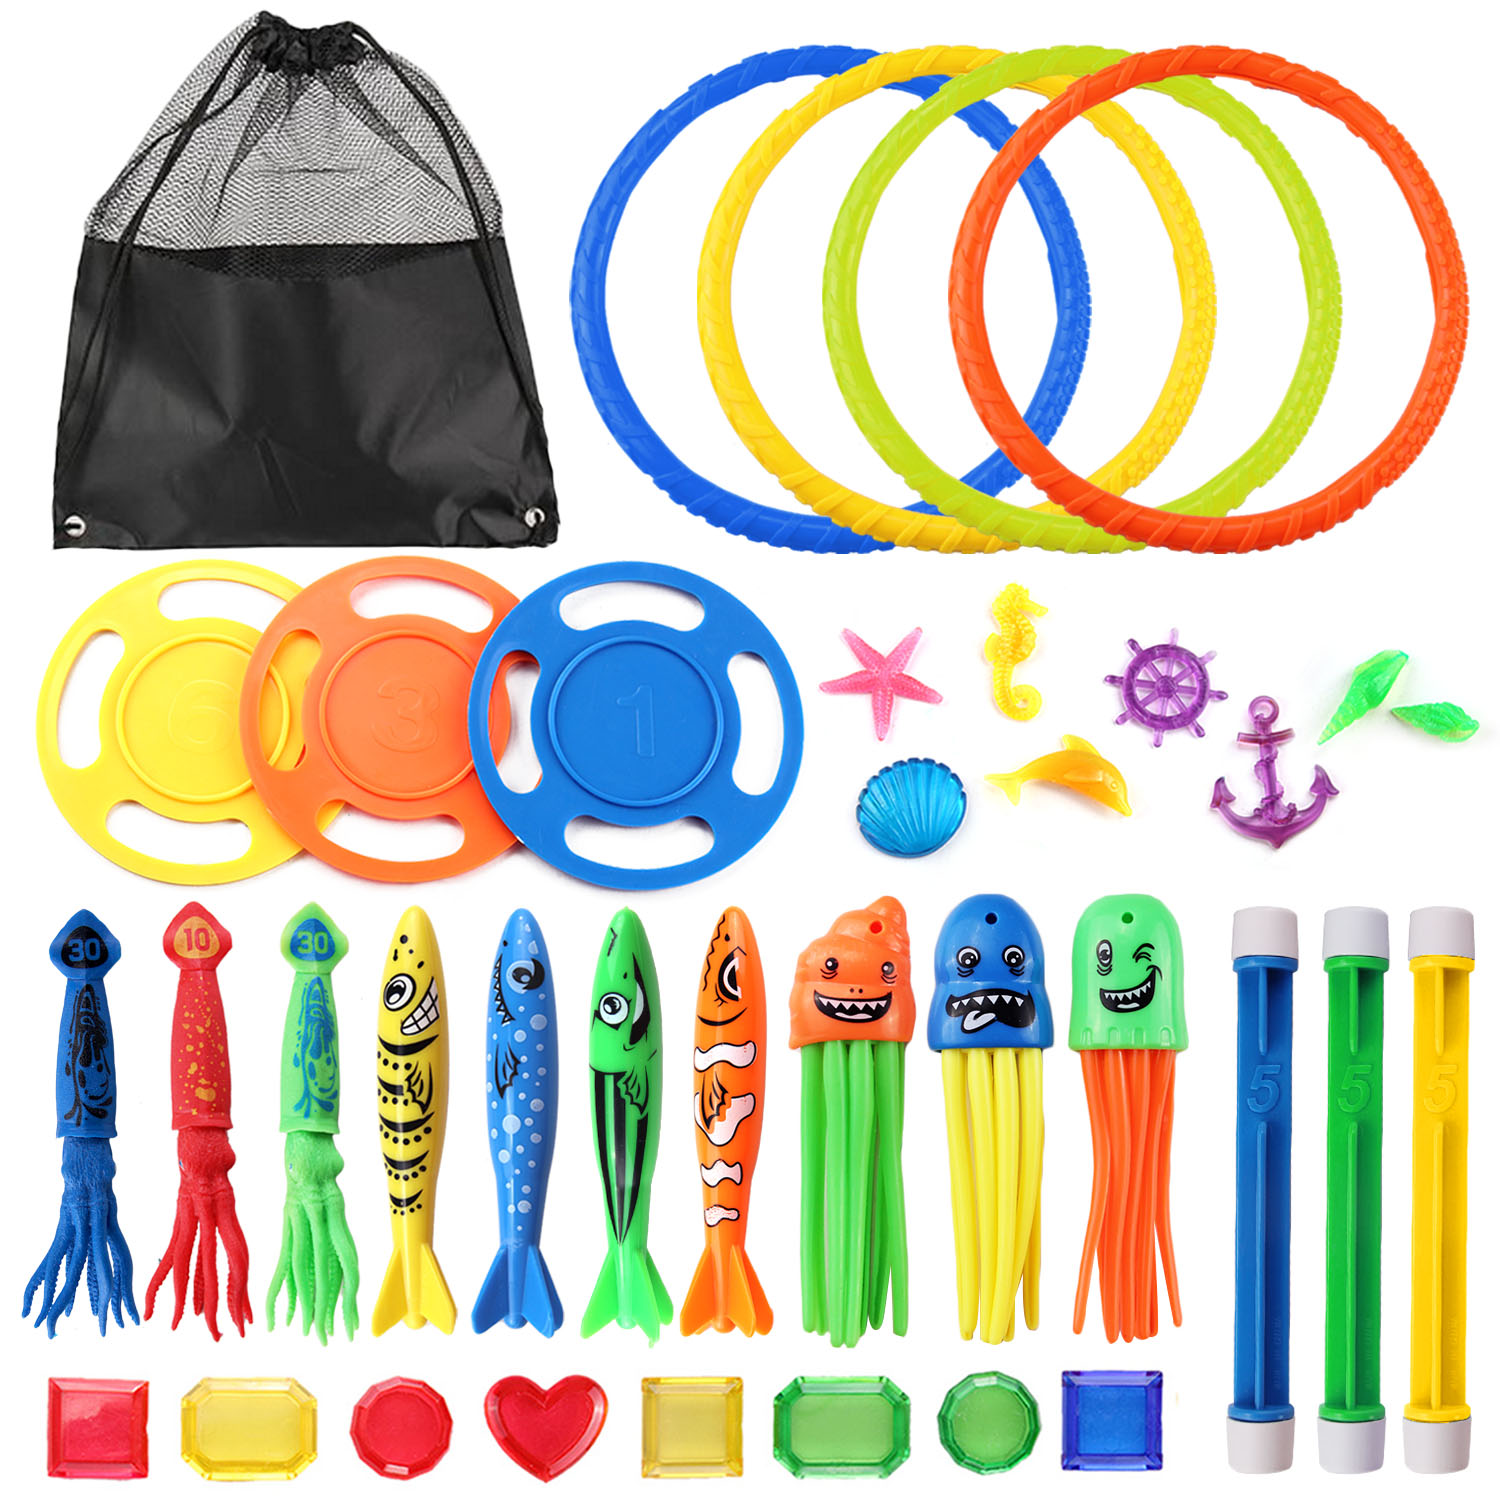 33PCS Funny Kids Diving Toys Set Underwater Water Play Toys With Storage Bag For Boys Girls Summer Games Swimming Pool Party